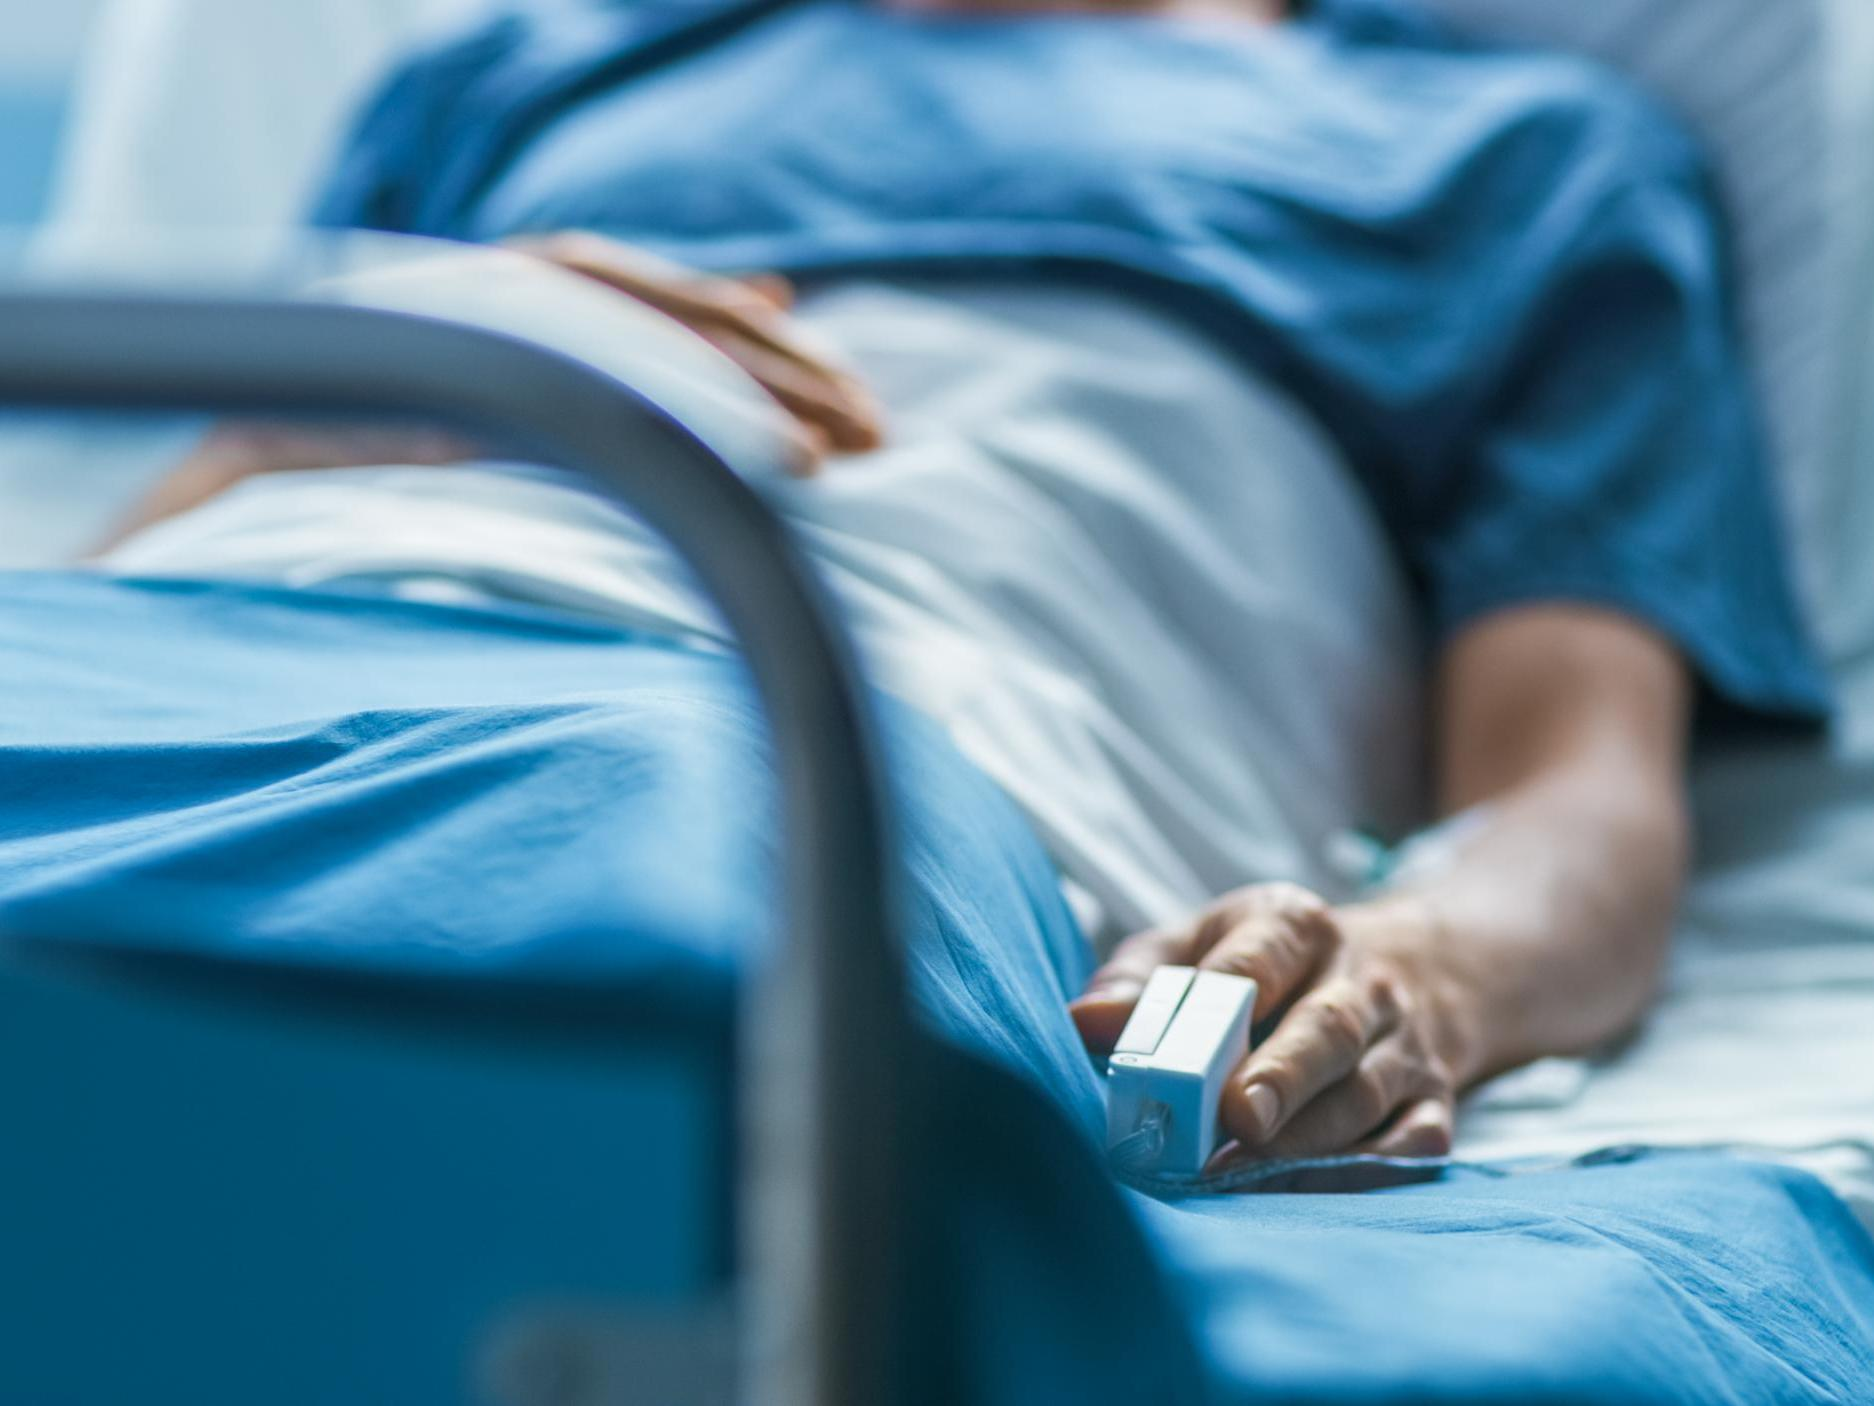 Two patients die after hospitals ignore key safety warning